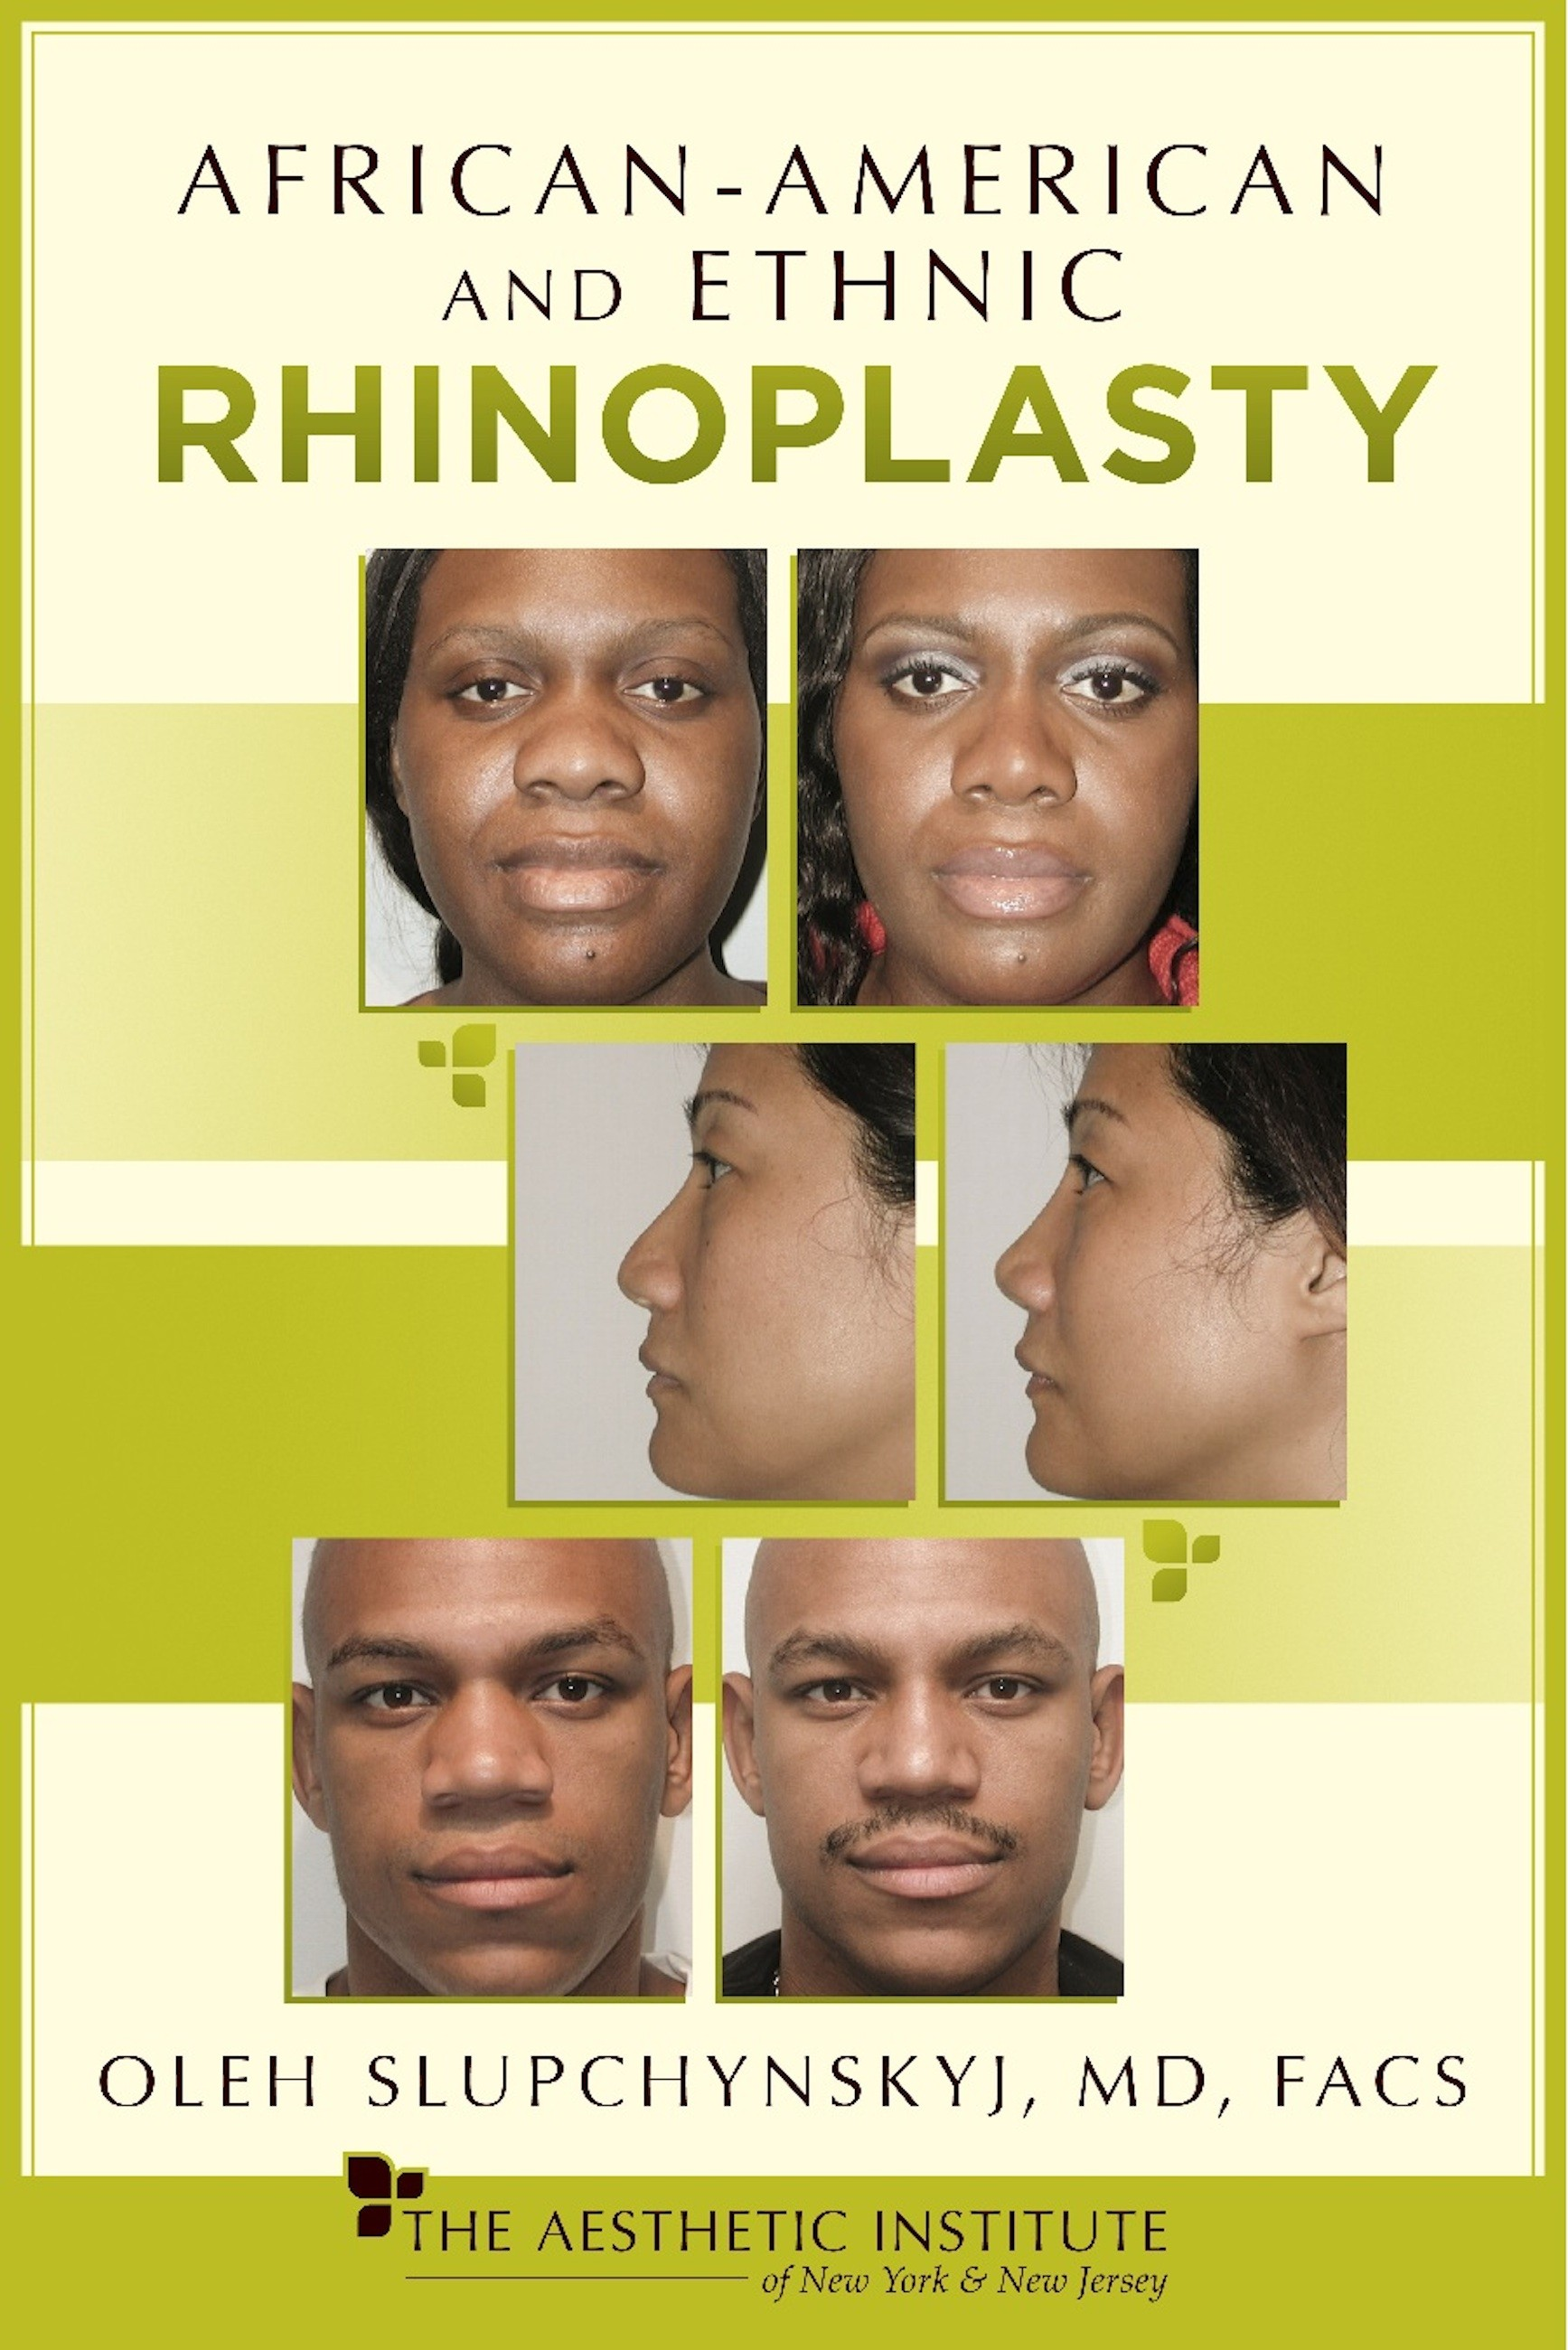 African-American and Ethnic Rhinoplasty